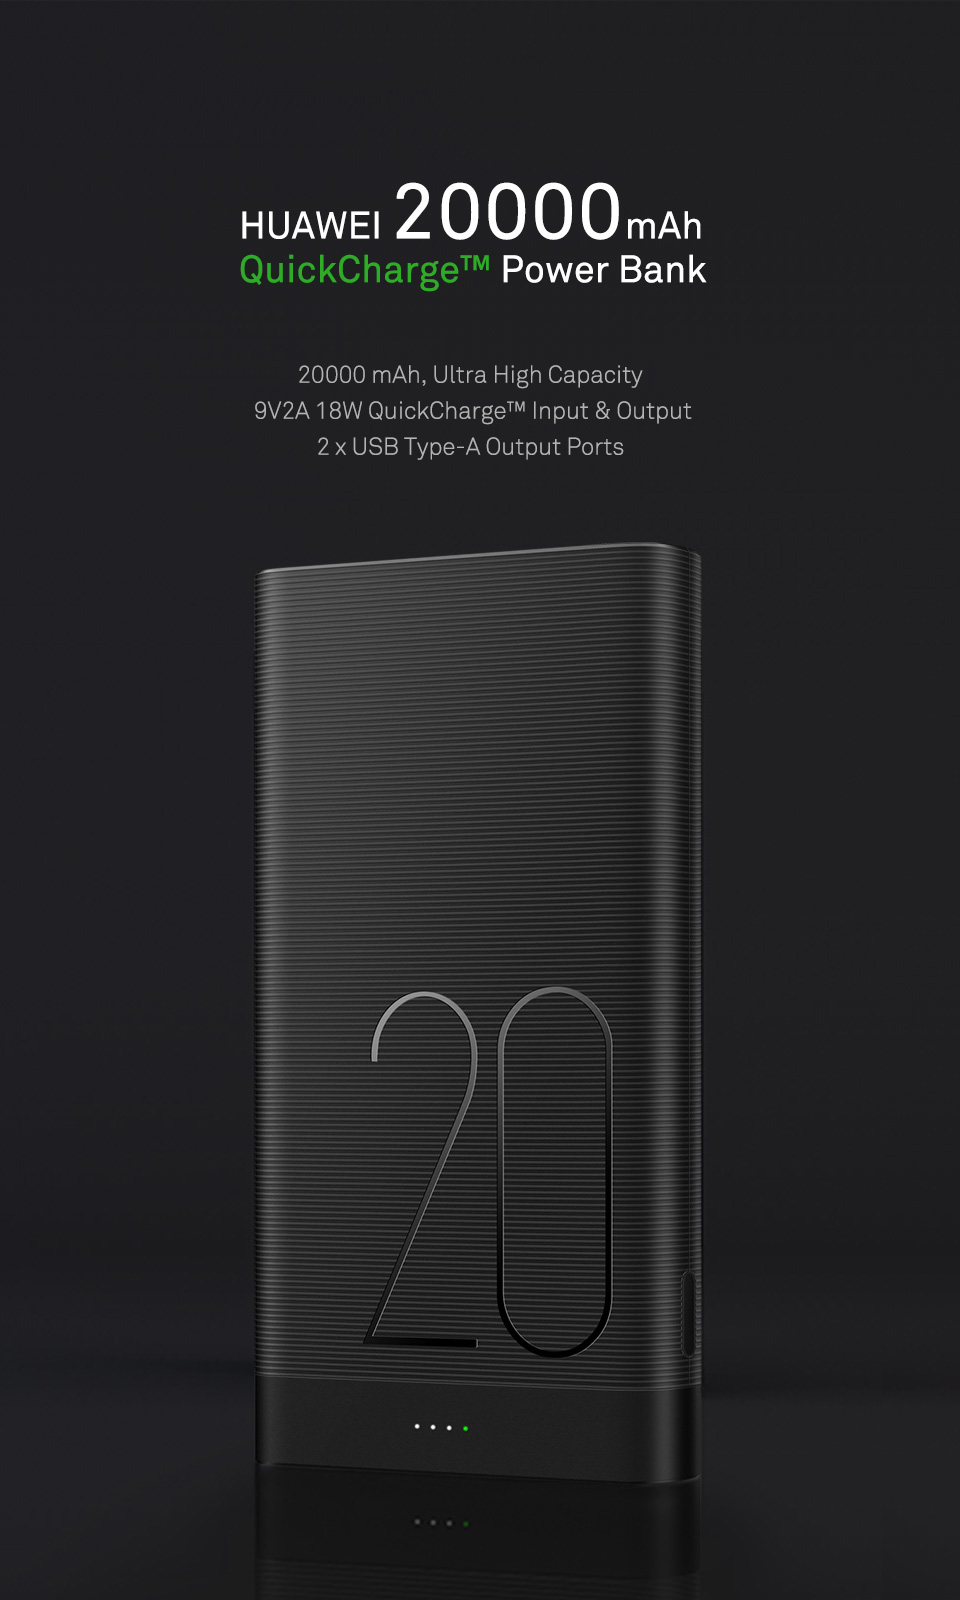 HUAWEI 20000mAh QuickCharge™ Power Bank